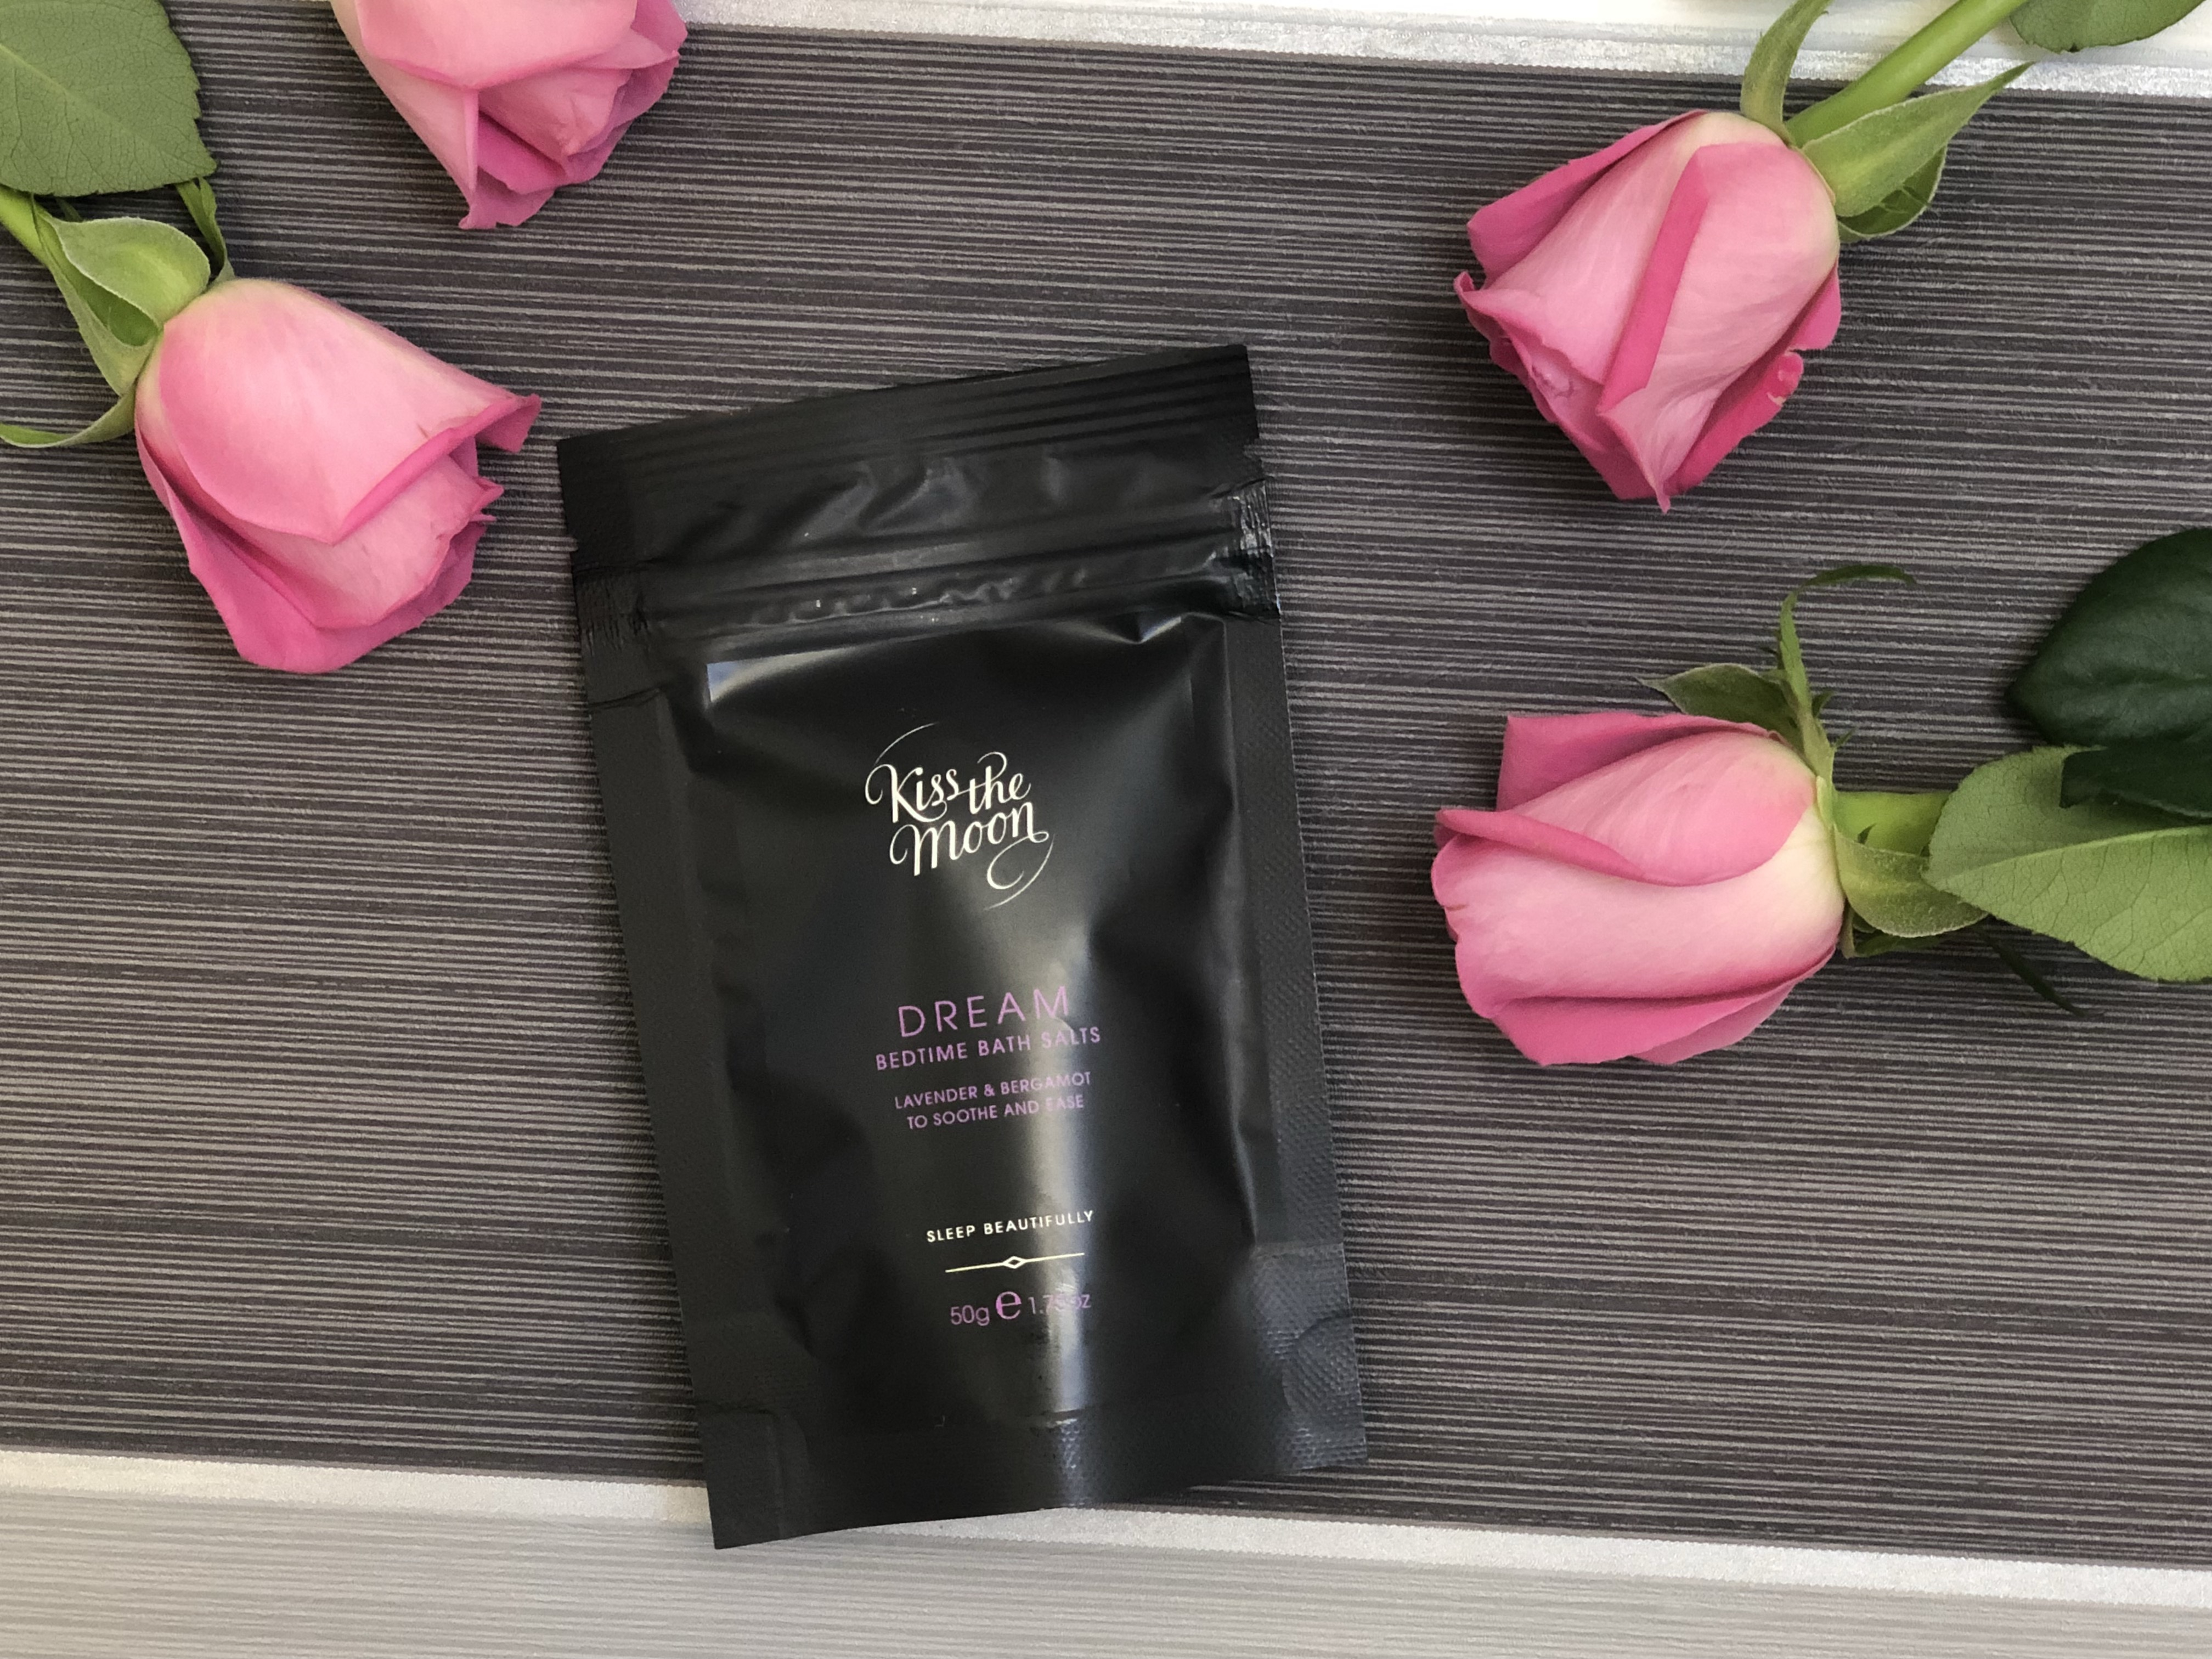 Kiss the moon dream bedtime bath salts